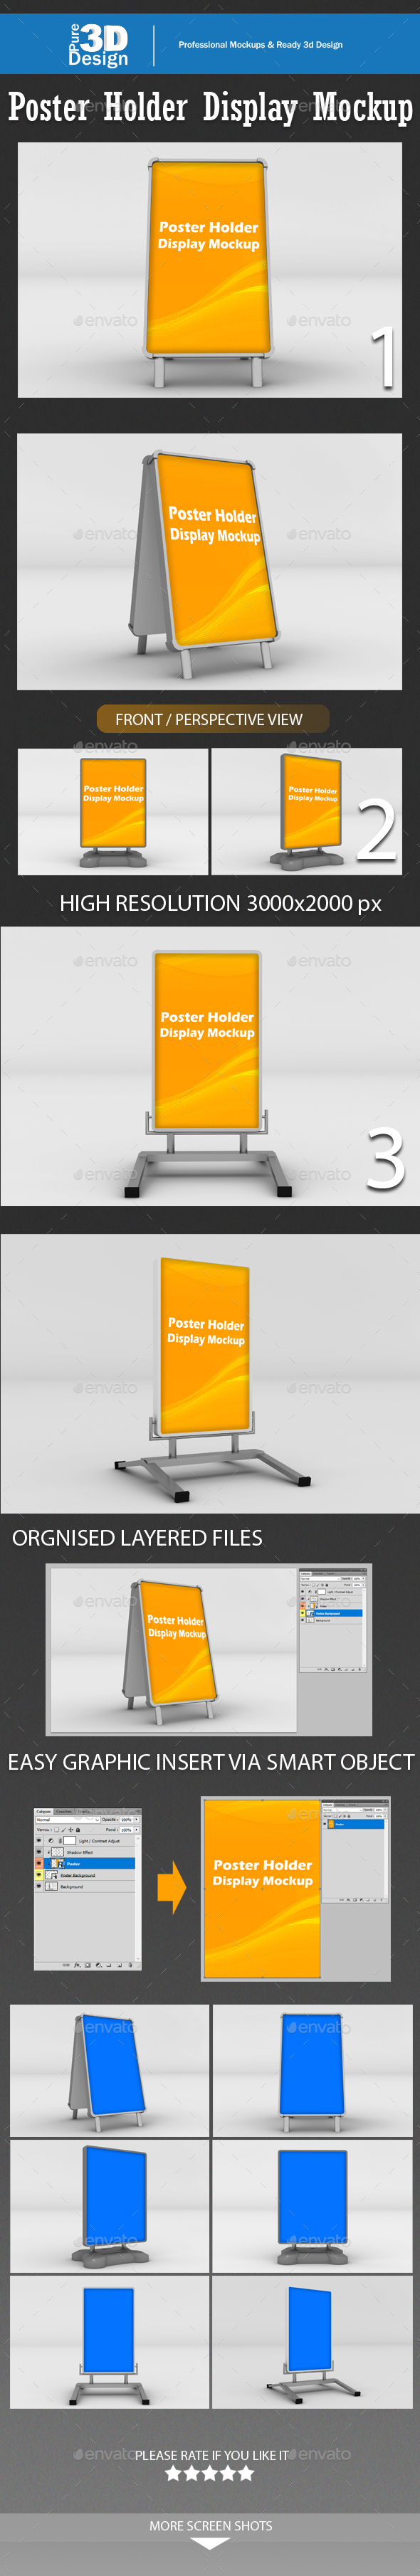 Poster Holder Display Mockup - Signage Print